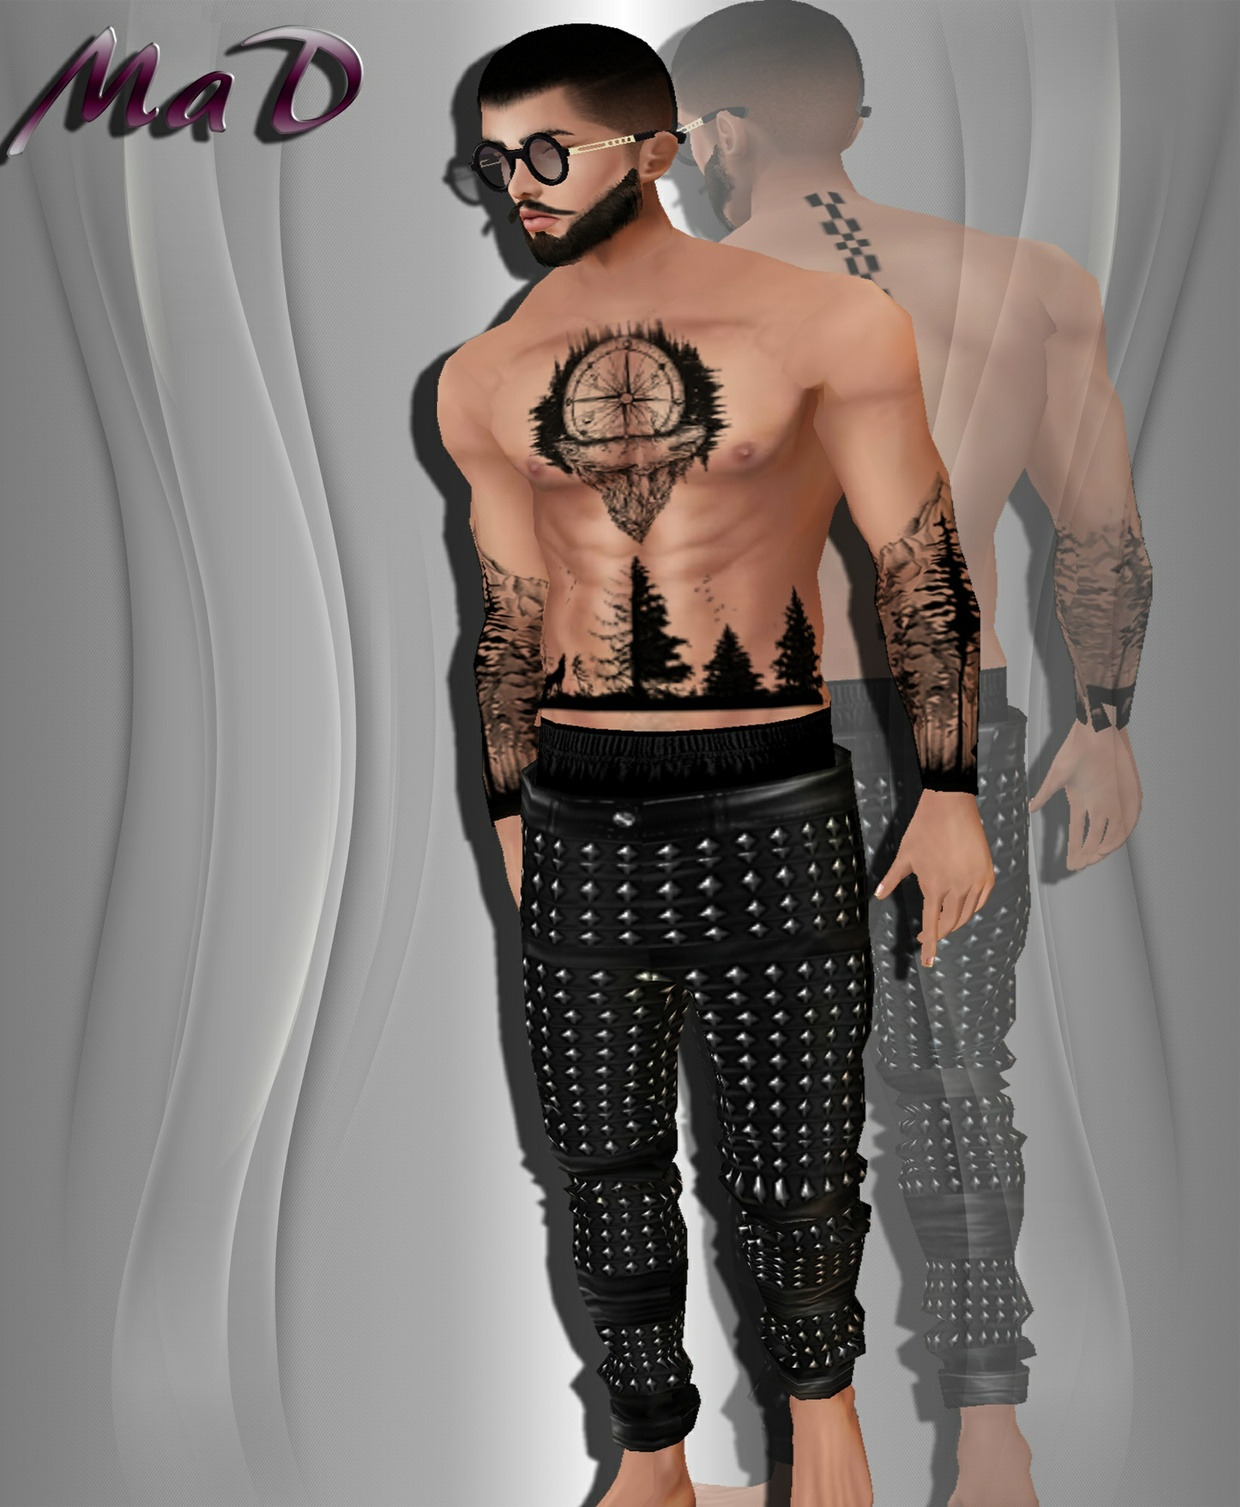 MaD MD Spike bottoms + Top Tattoo body CATTY ONLY